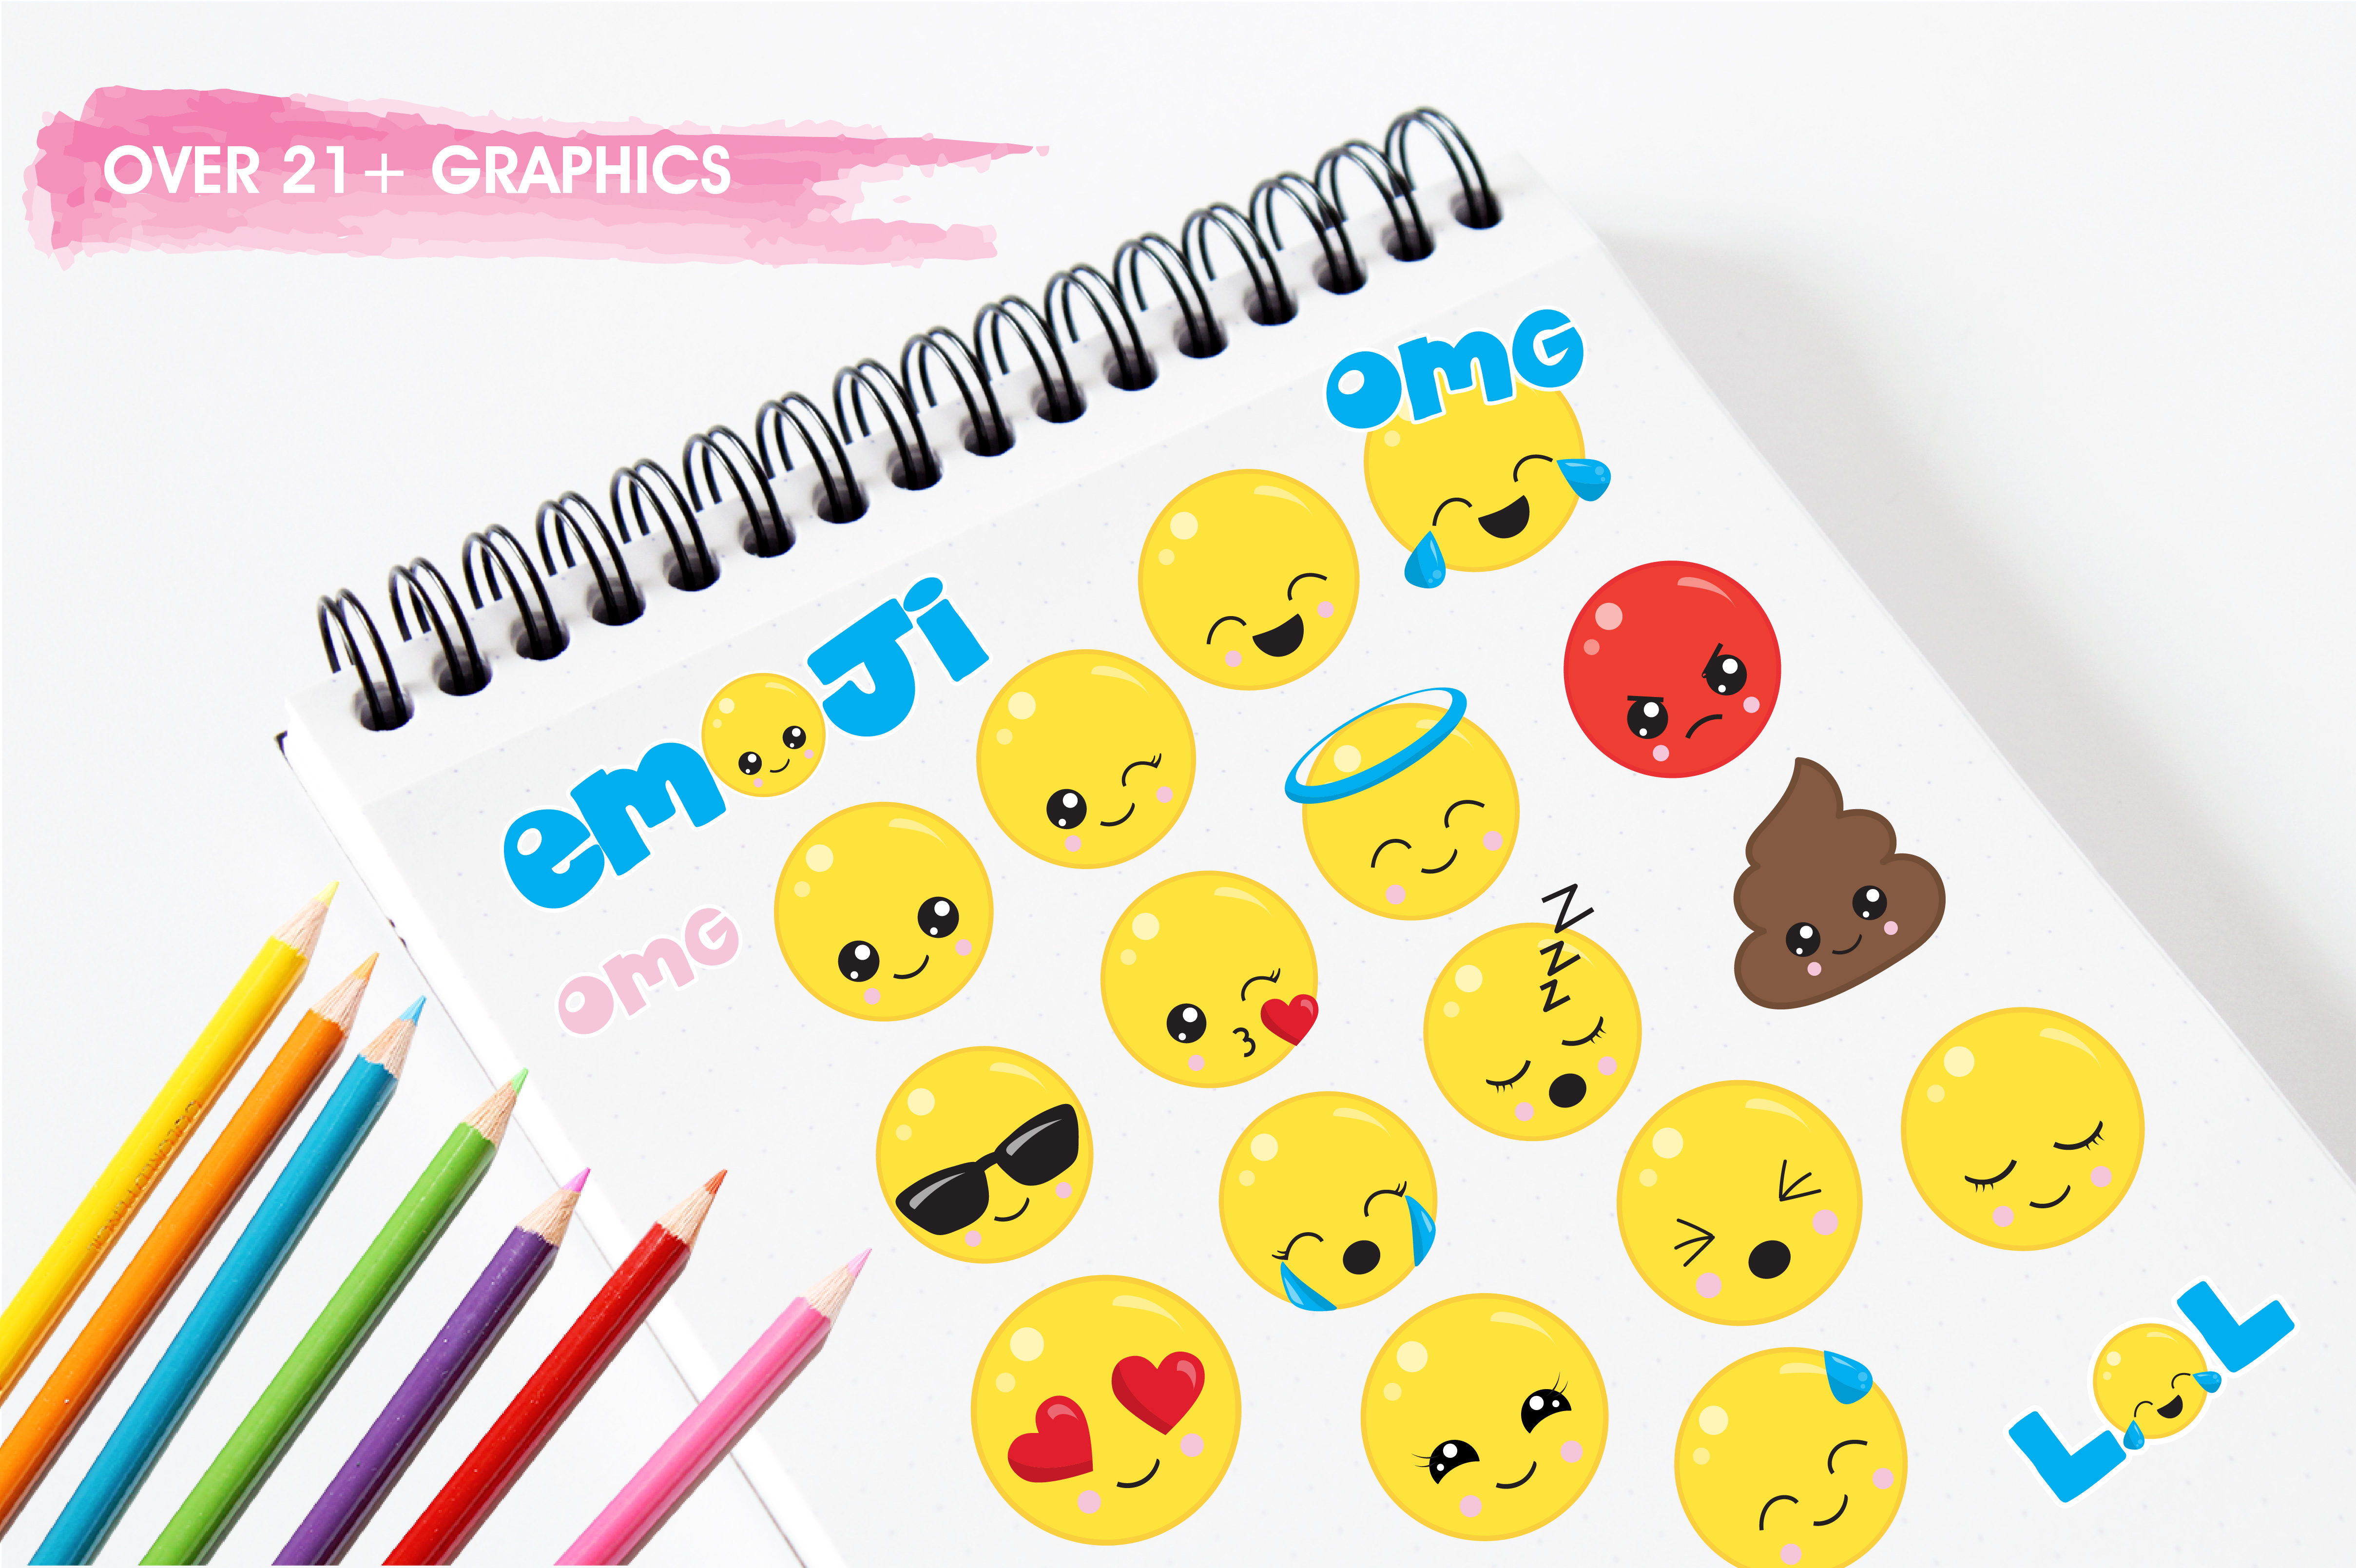 Cute emoji graphics and illustrations example image 3